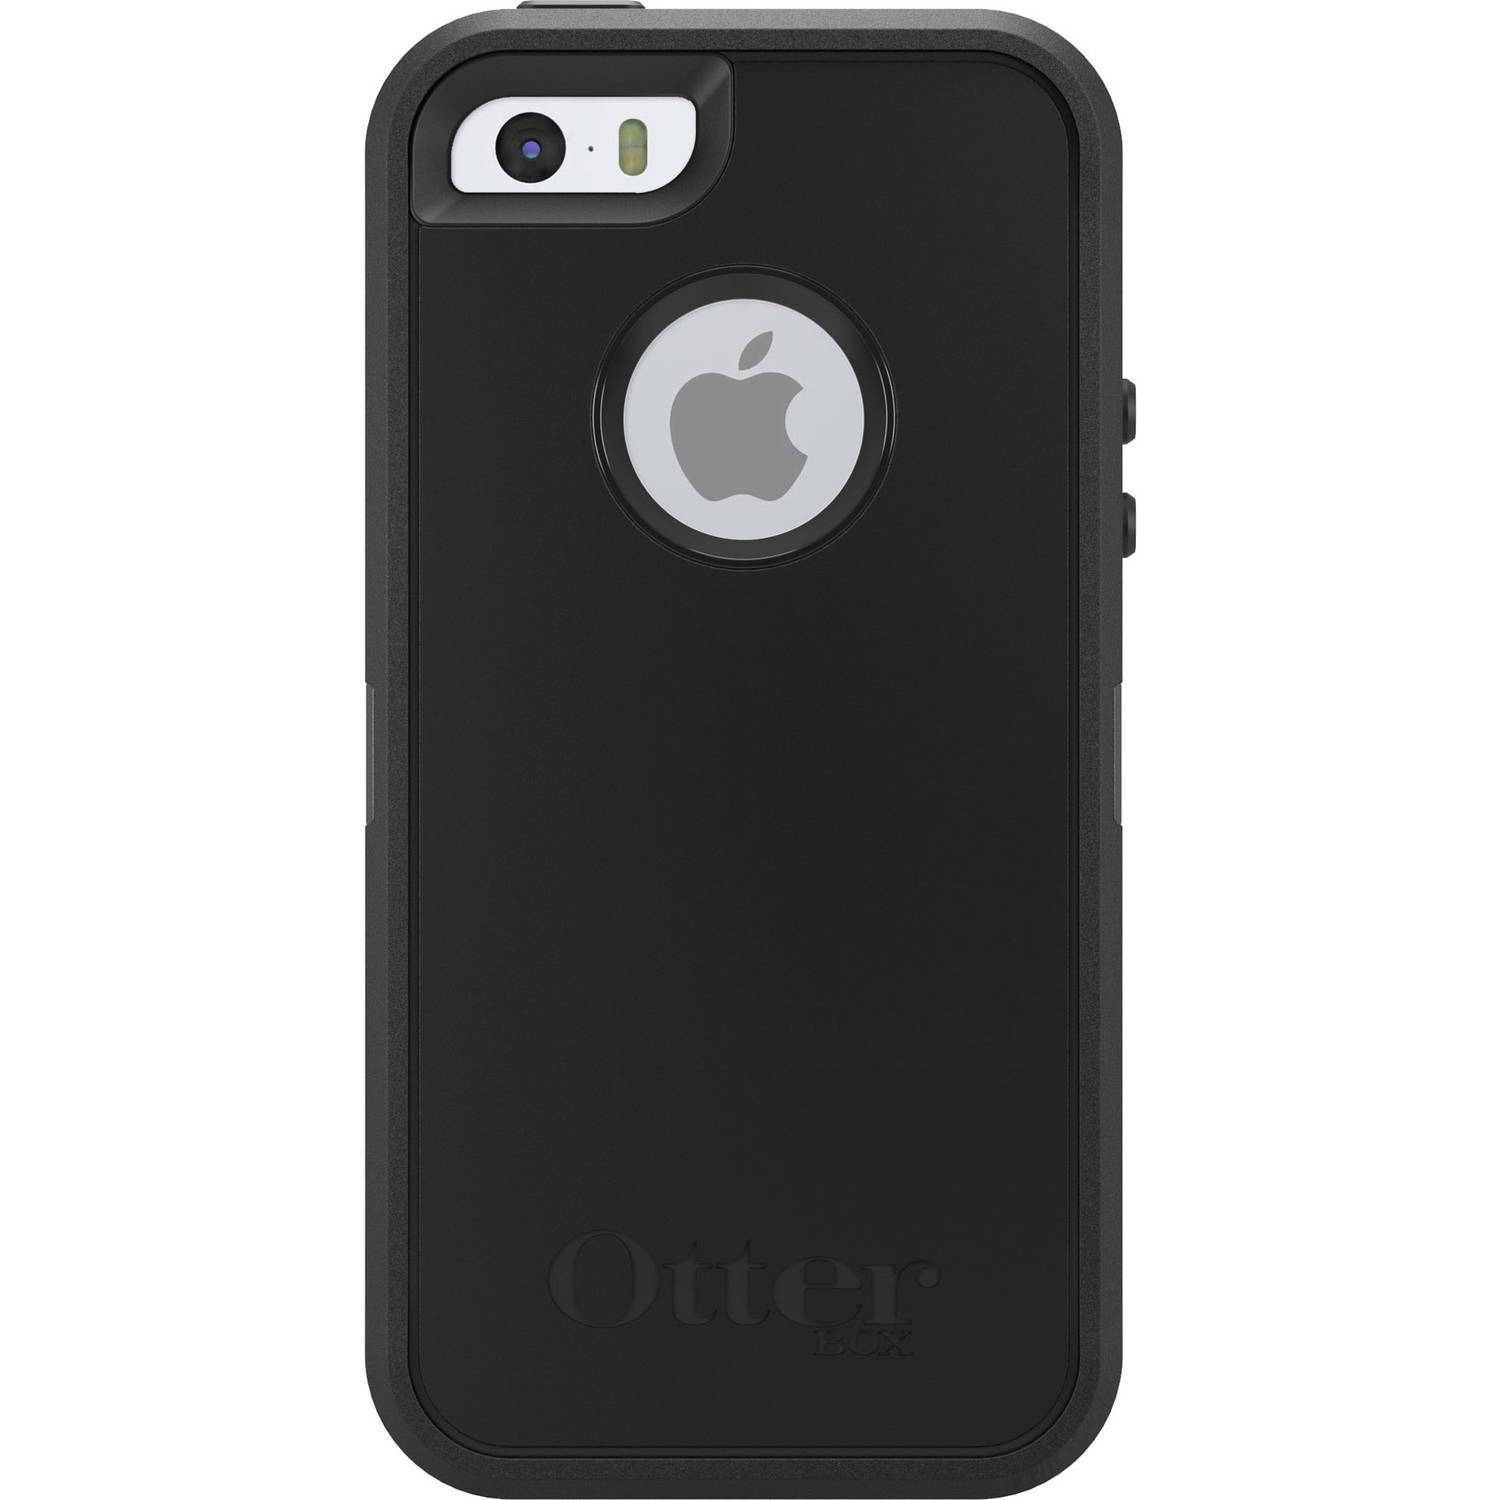 the best attitude 4aa11 964f6 OtterBox Defender Case for Apple iPhone 5/5S/SE